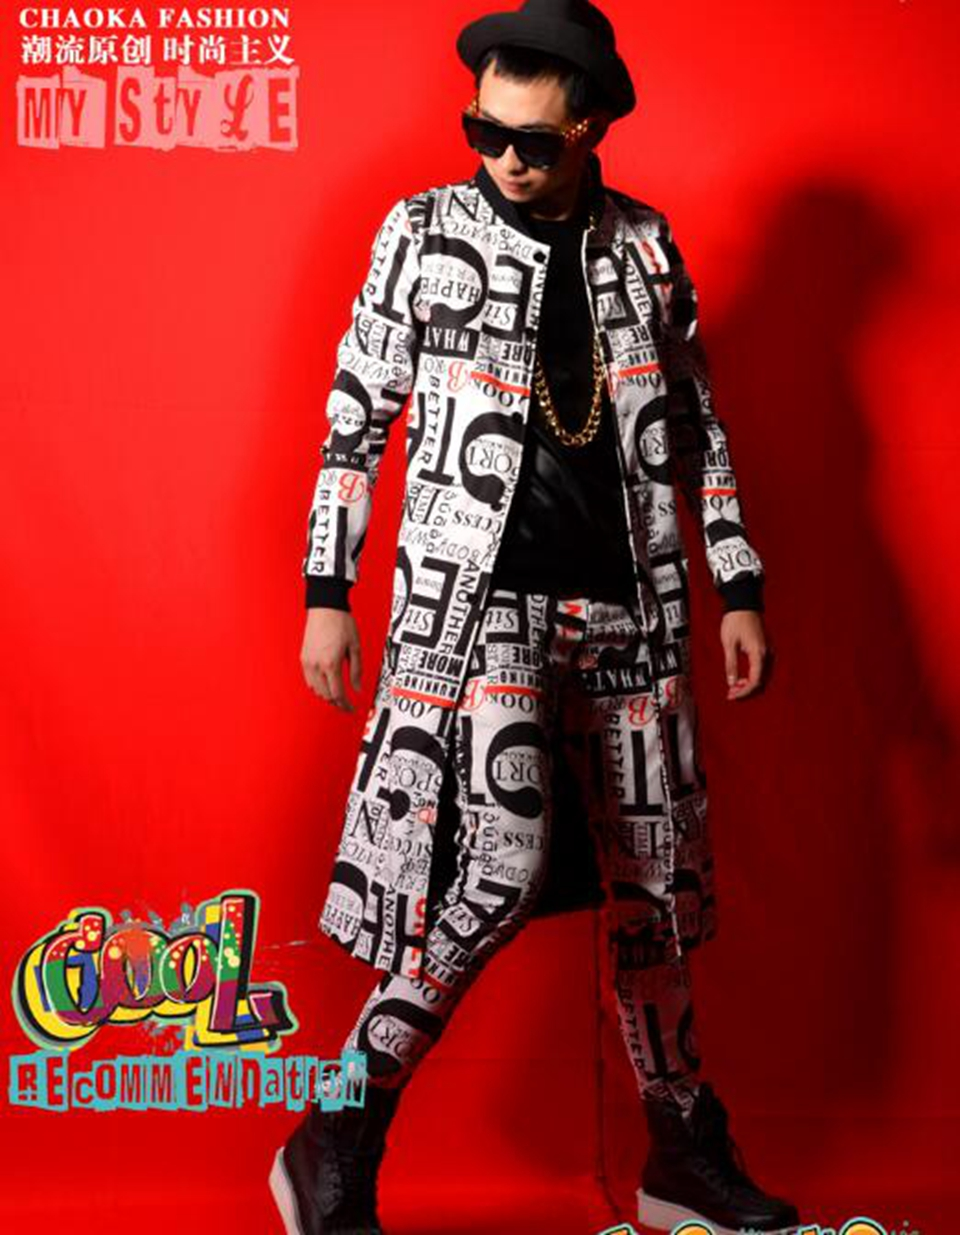 Mens new European and American leisure fashion boutique singer host costumes of England alphanumeric printed suit / M-2xL